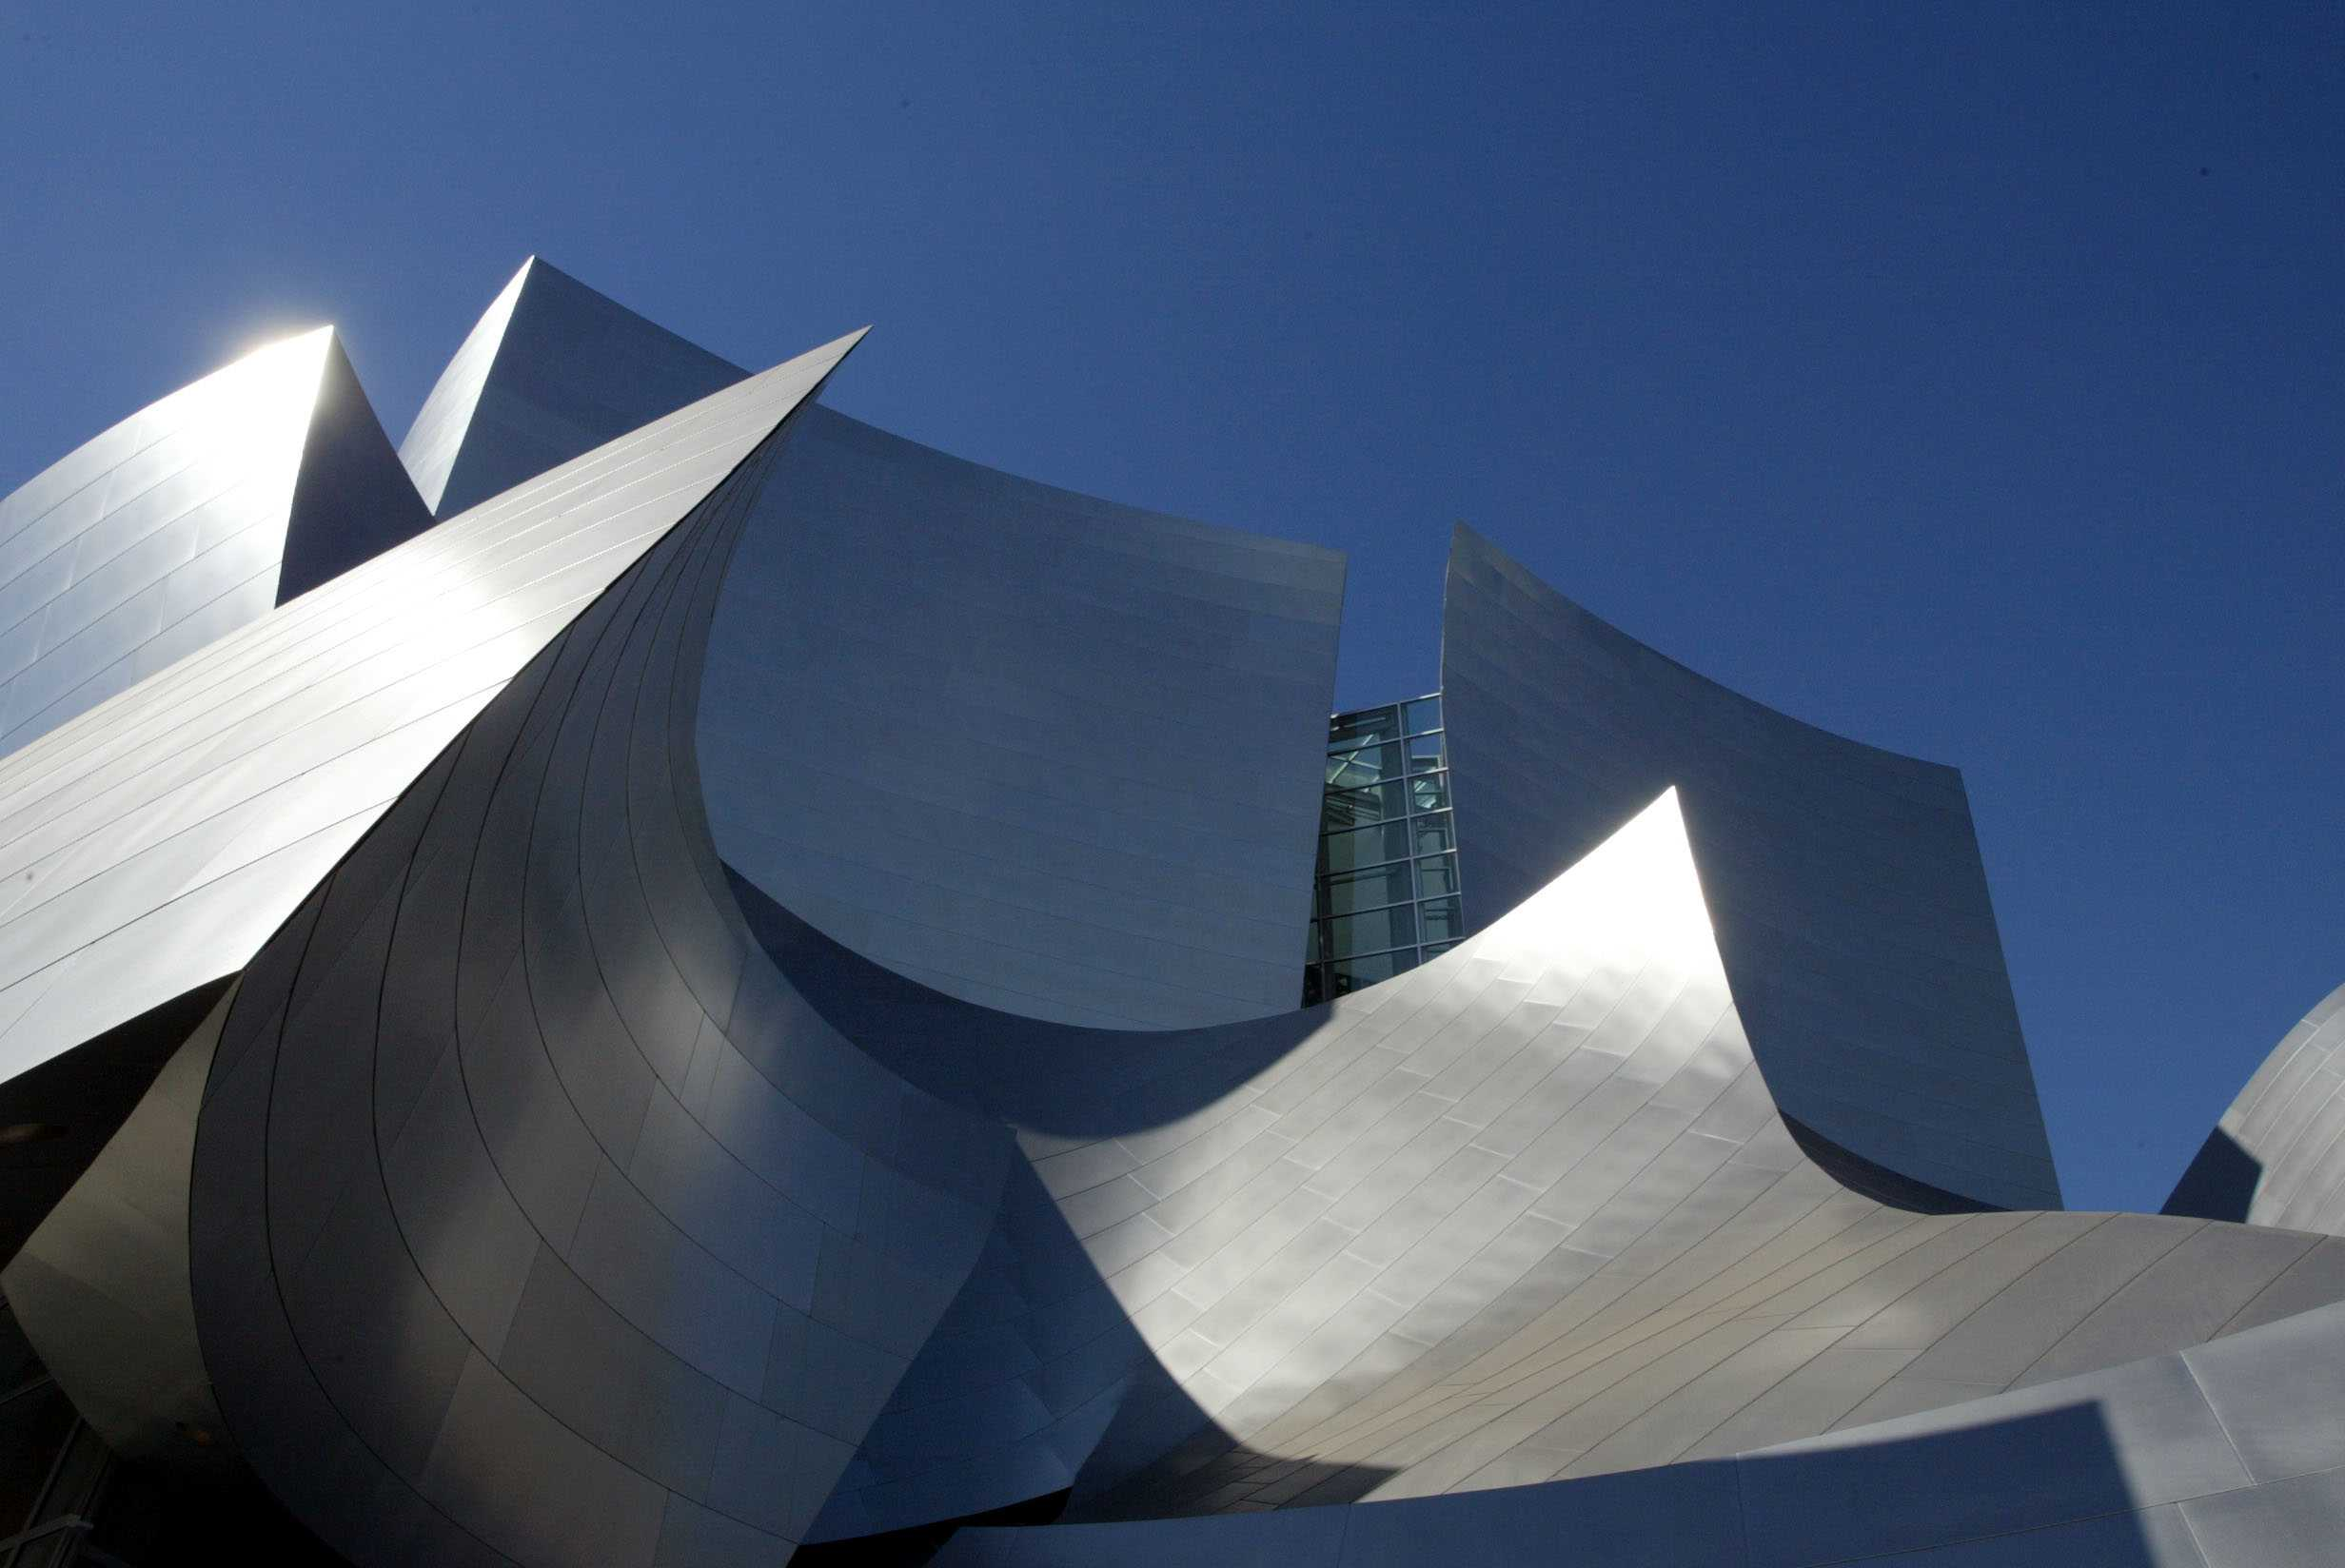 The Brushed Stainless Steel Covering of the Walt Disney Concert Hall in Los Angeles, California